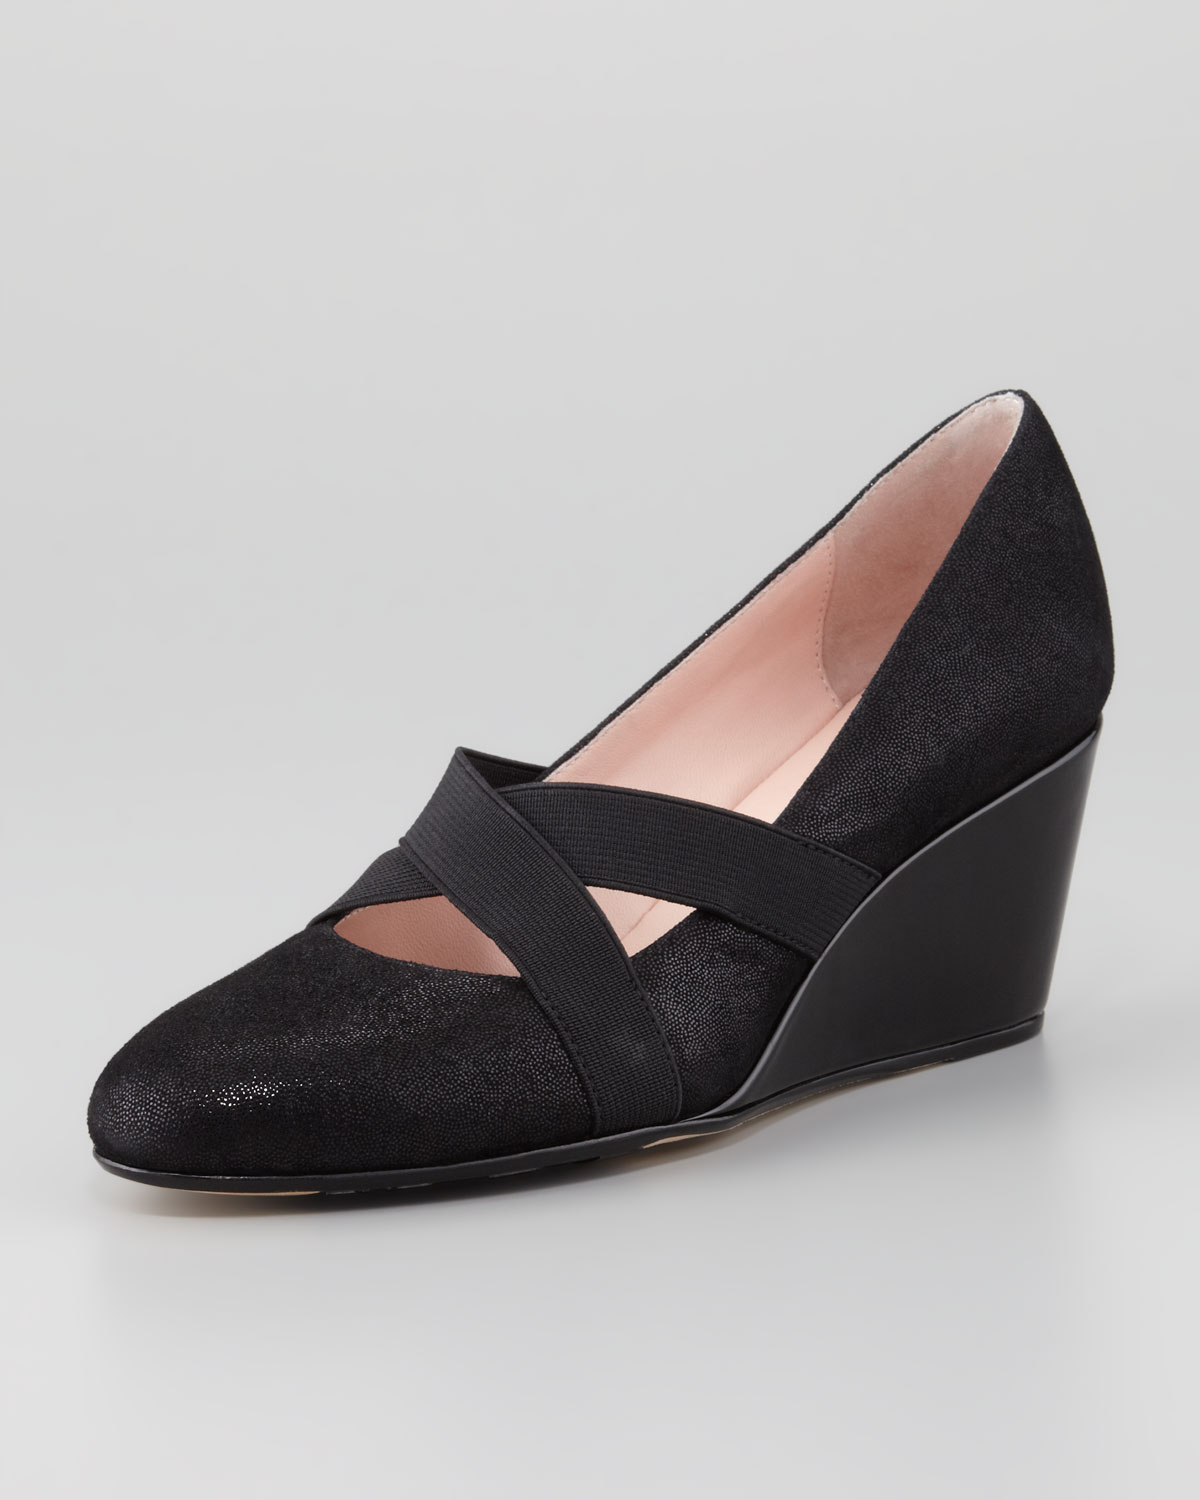 18dcf37a0c8b Lyst - Taryn Rose Kimber Wrapped Suede Wedge Black in Black